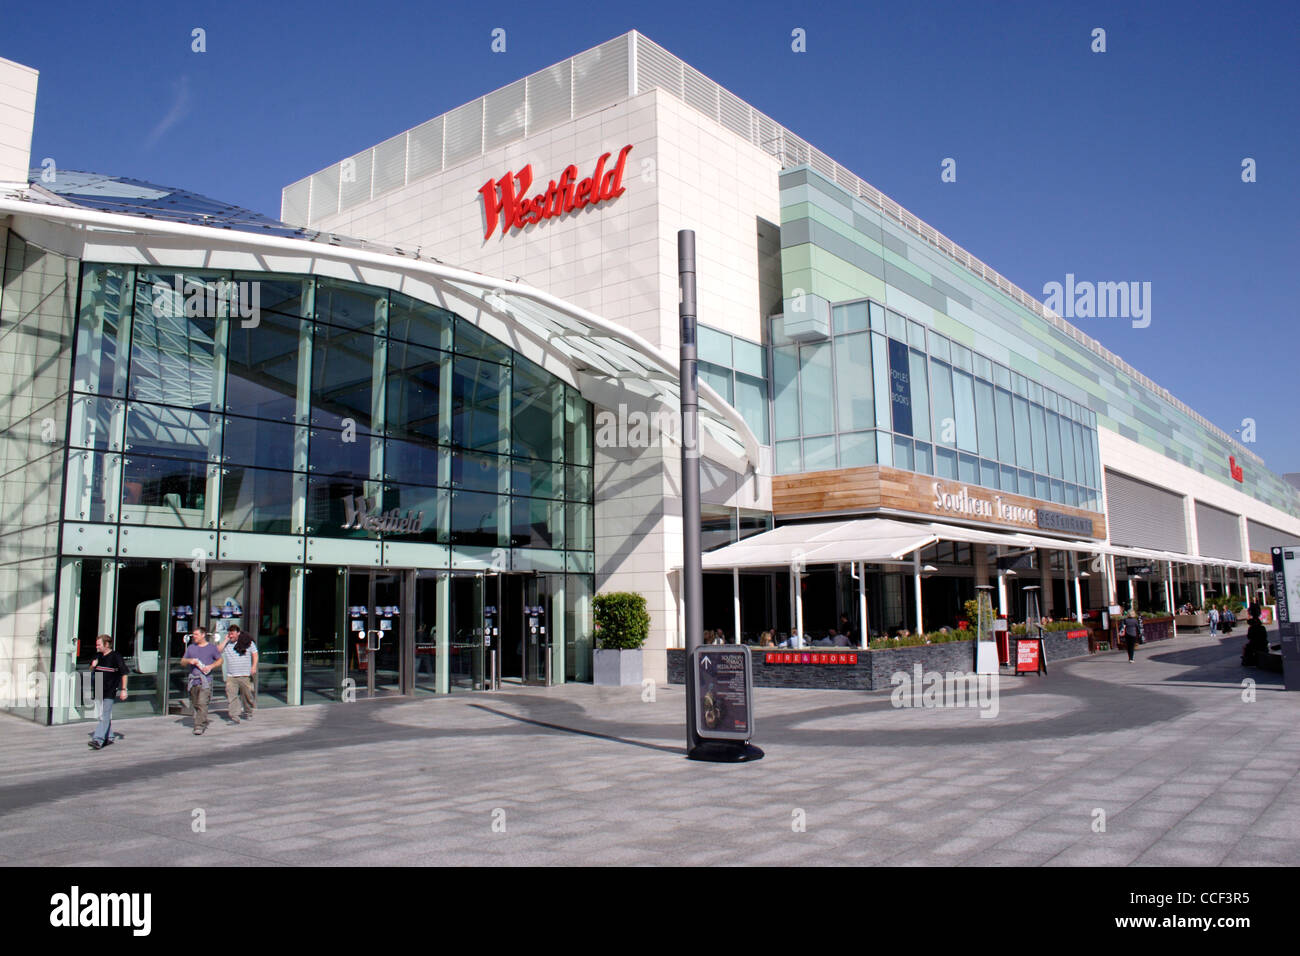 Entrance to Westfield Shopping Centre Shepherds Bush London - Stock Image